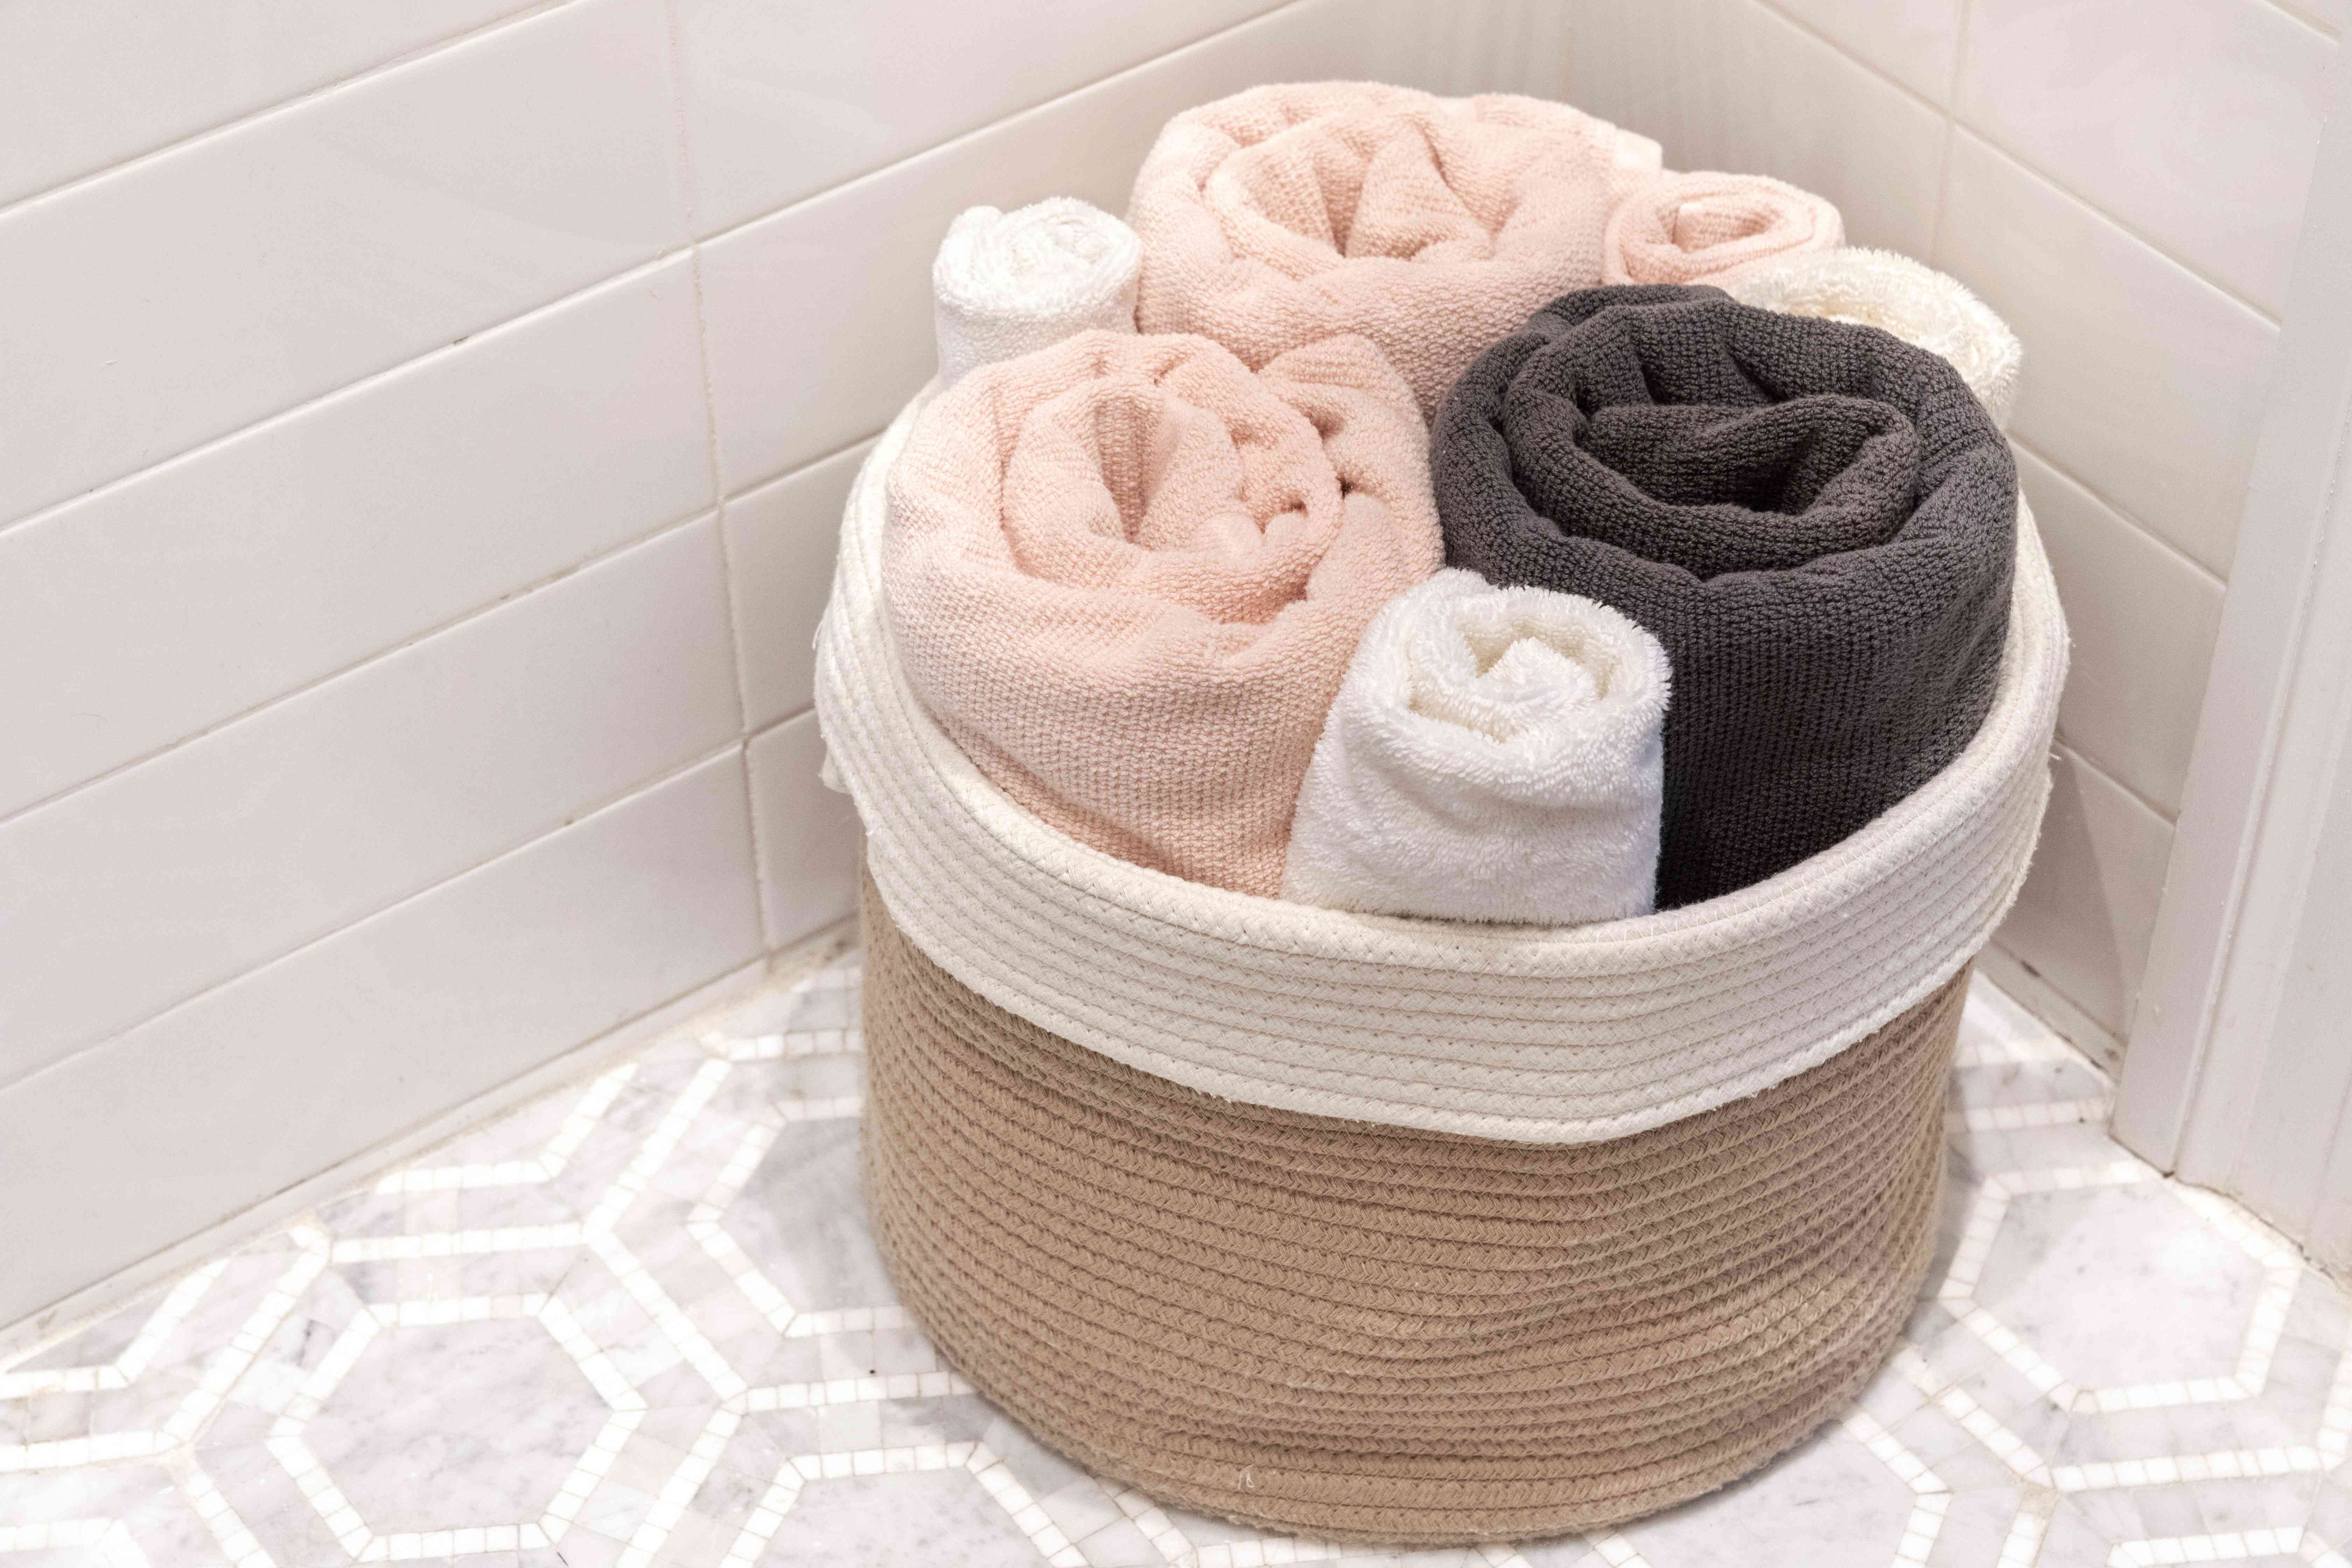 a place for new towels